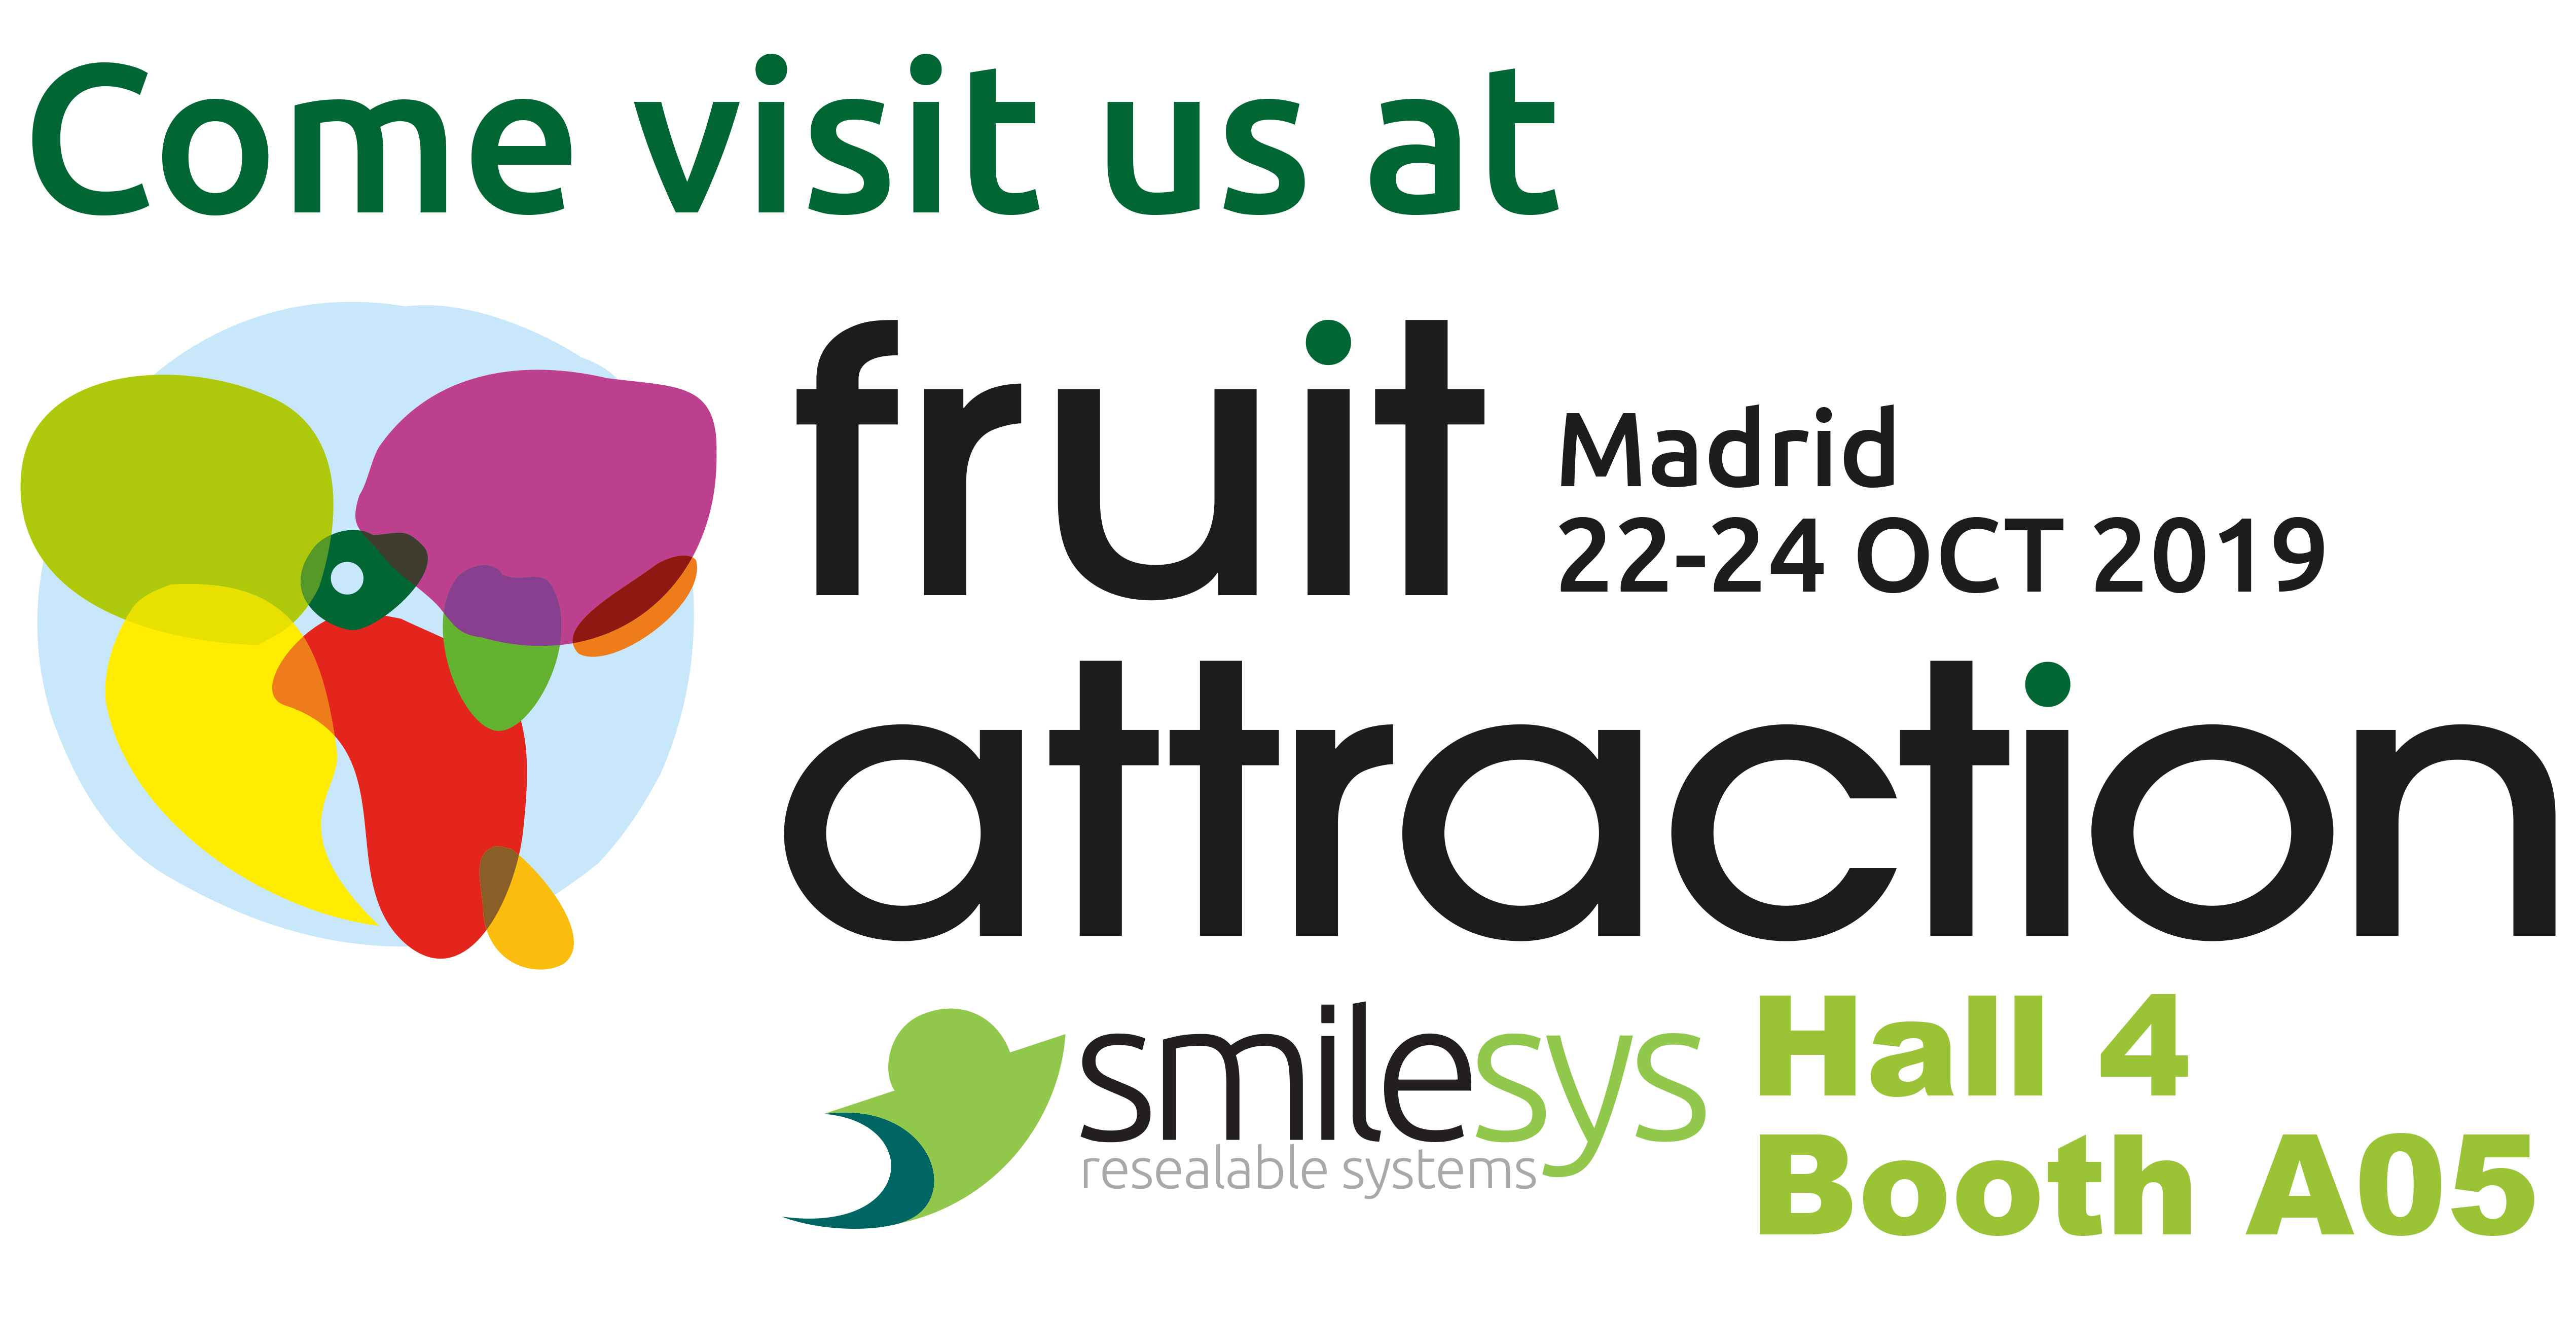 from October 22nd to 24th we will exhibit at Fruit Attraction Madrid